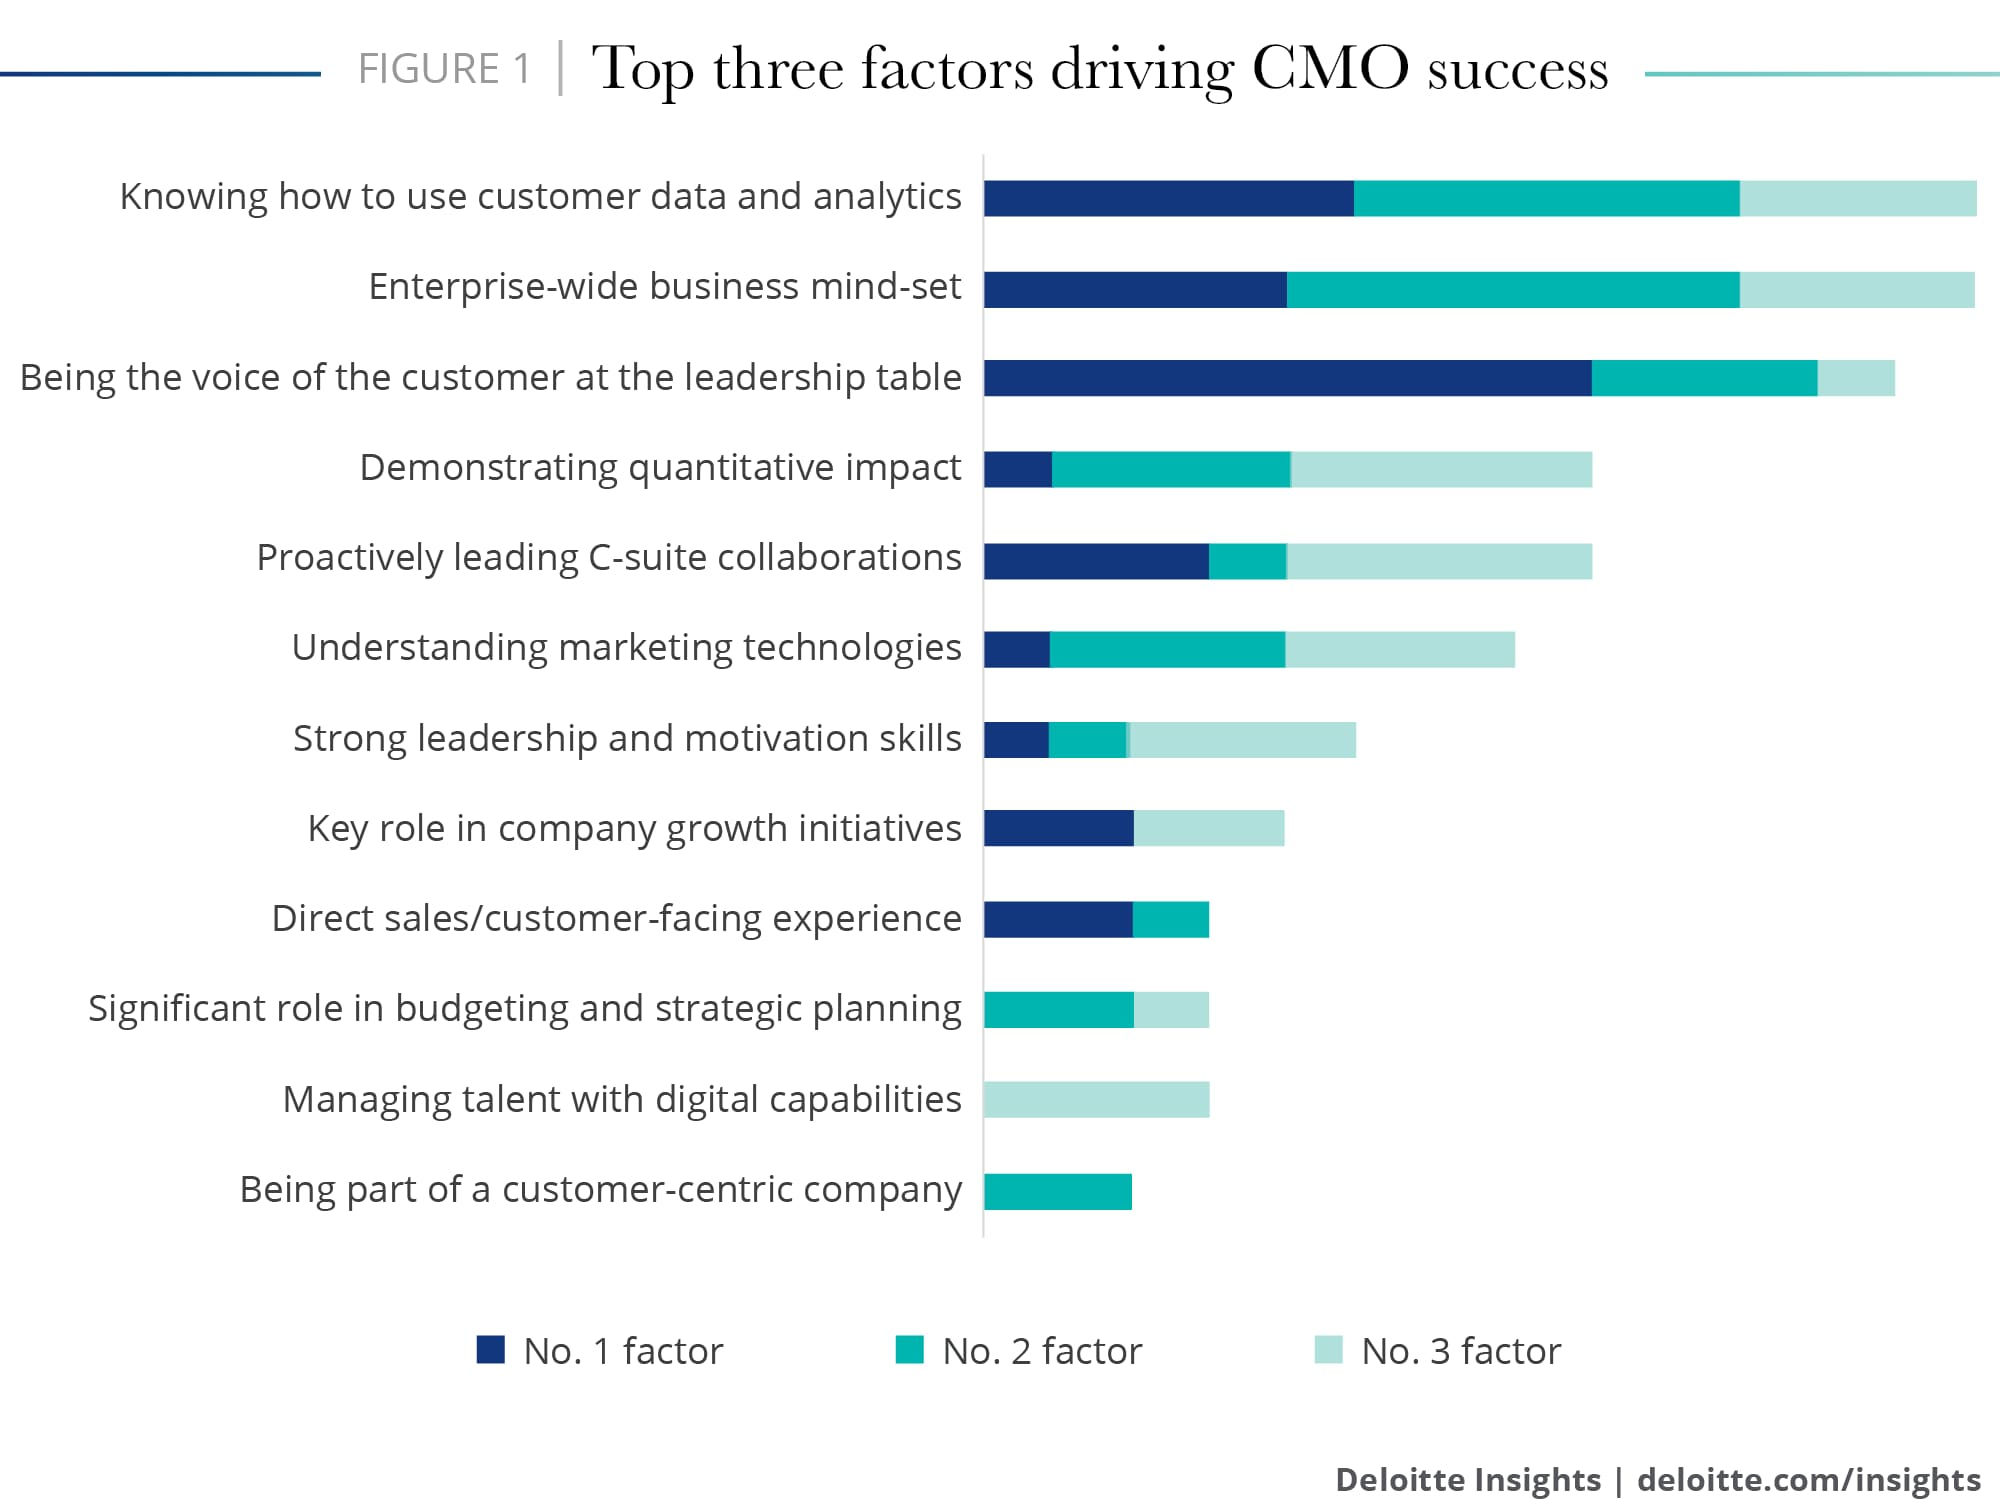 Top three factors driving CMO success